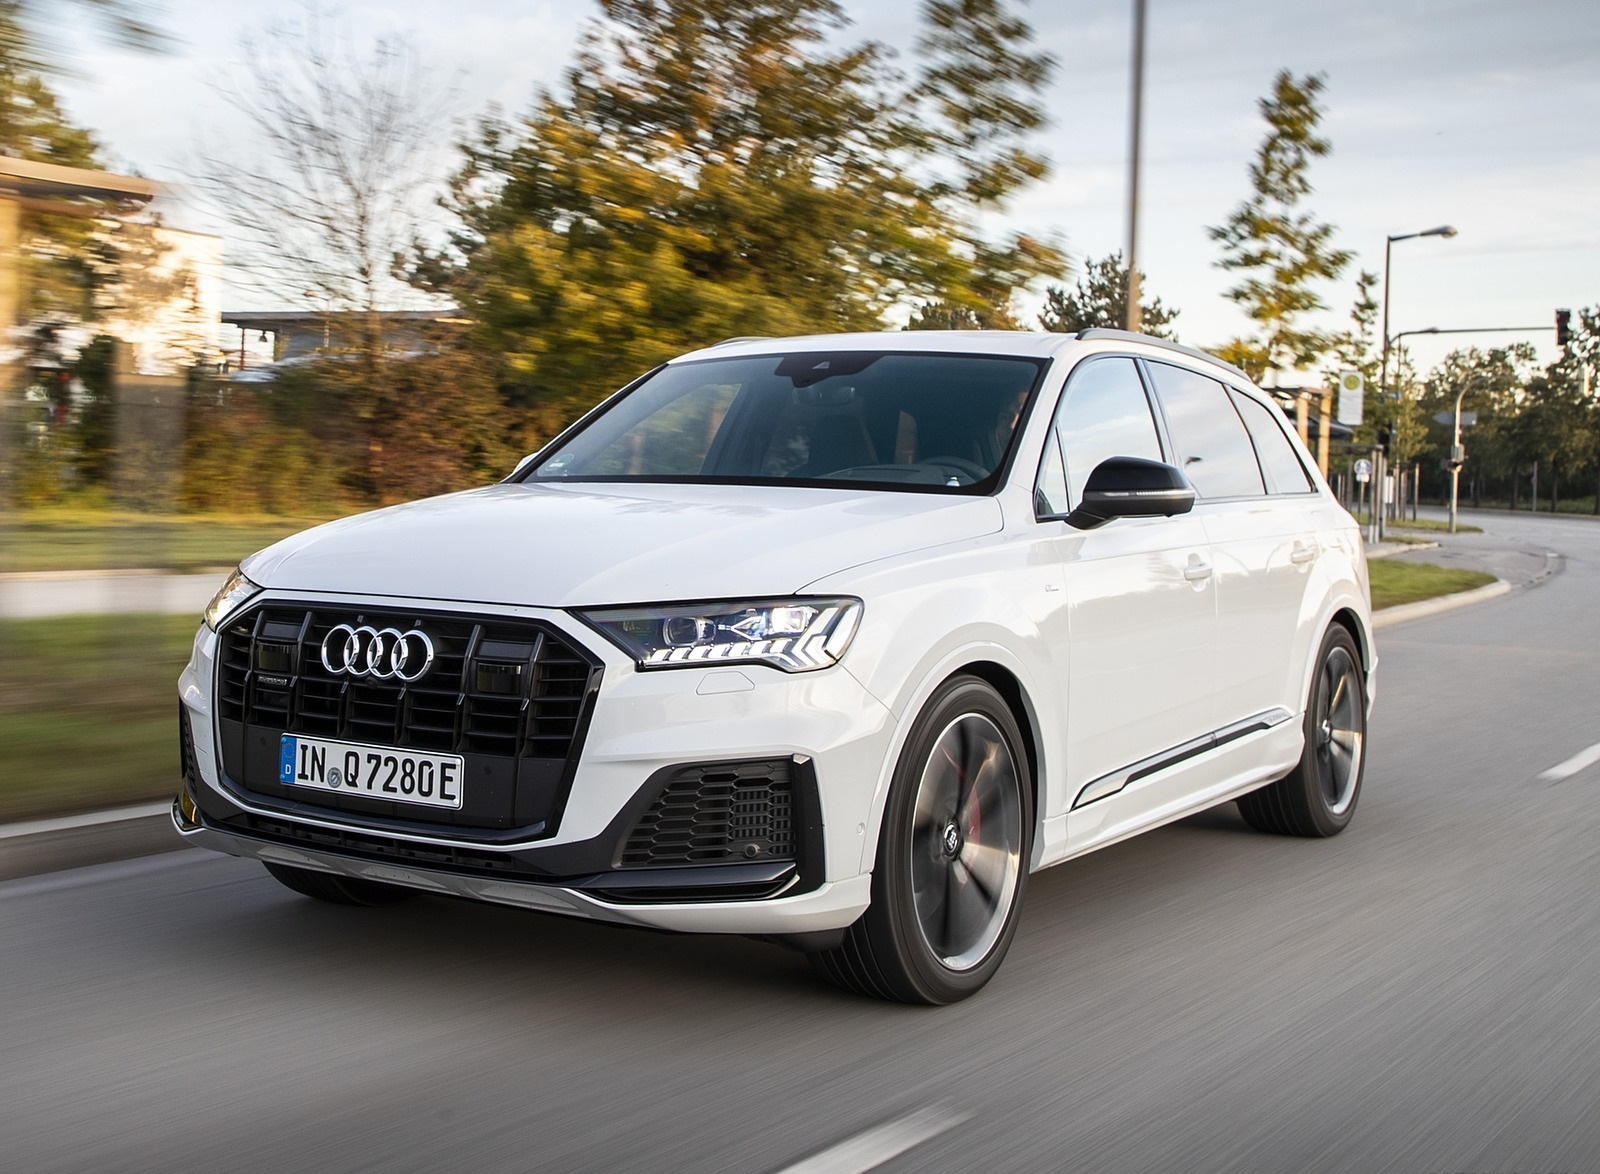 2020 Audi Q7 TFSI e quattro Plug-In Hybrid (Color: Glacier White) Front Three-Quarter Wallpapers (9)